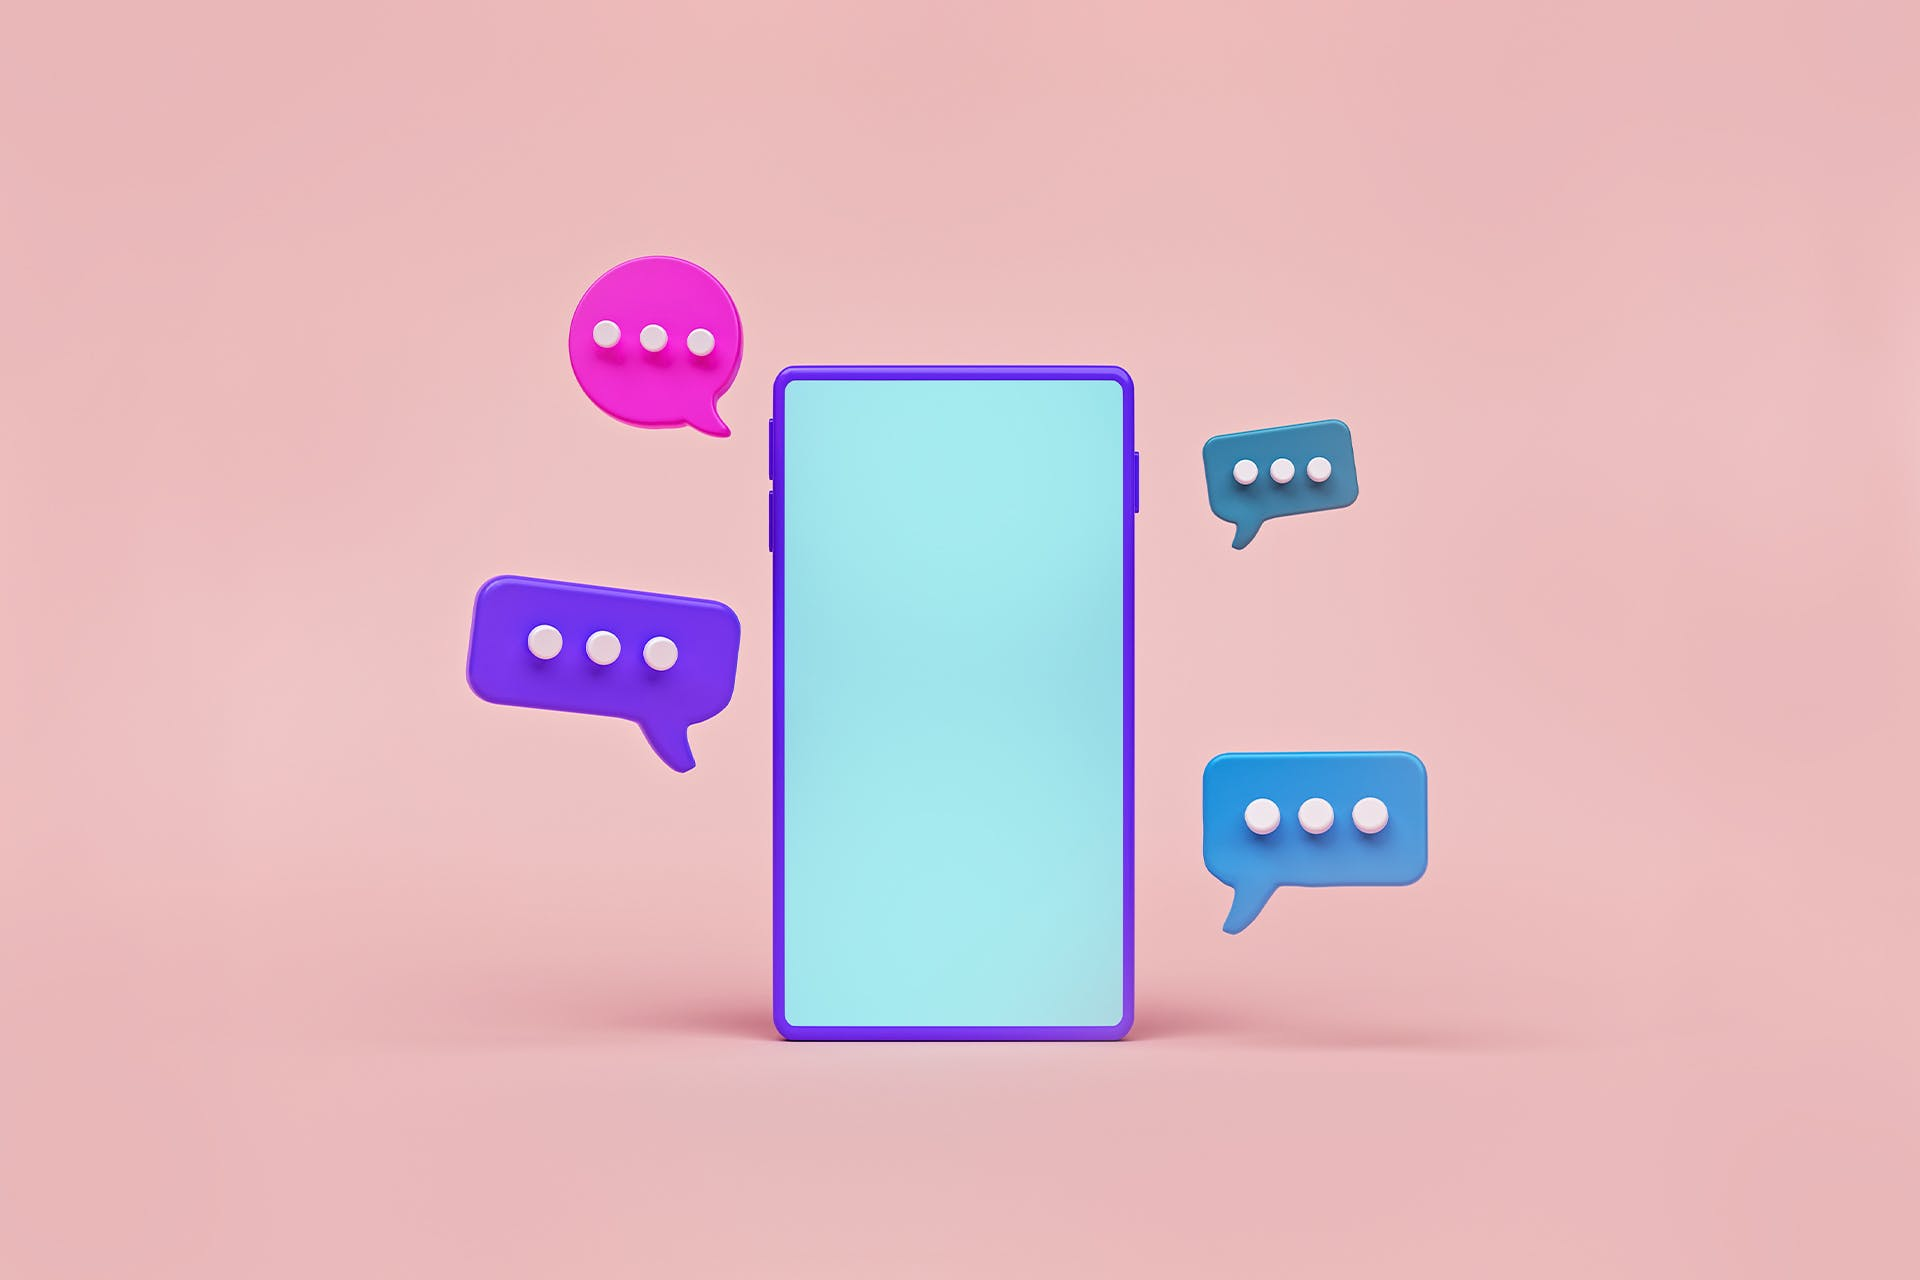 An image of a cartoon phone with stylized chat bubbles appearing around the screen against a solid pink background. Each of the four chat bubbles are a different color, symbolizing the different threads that marketers can engage in on Reddit.